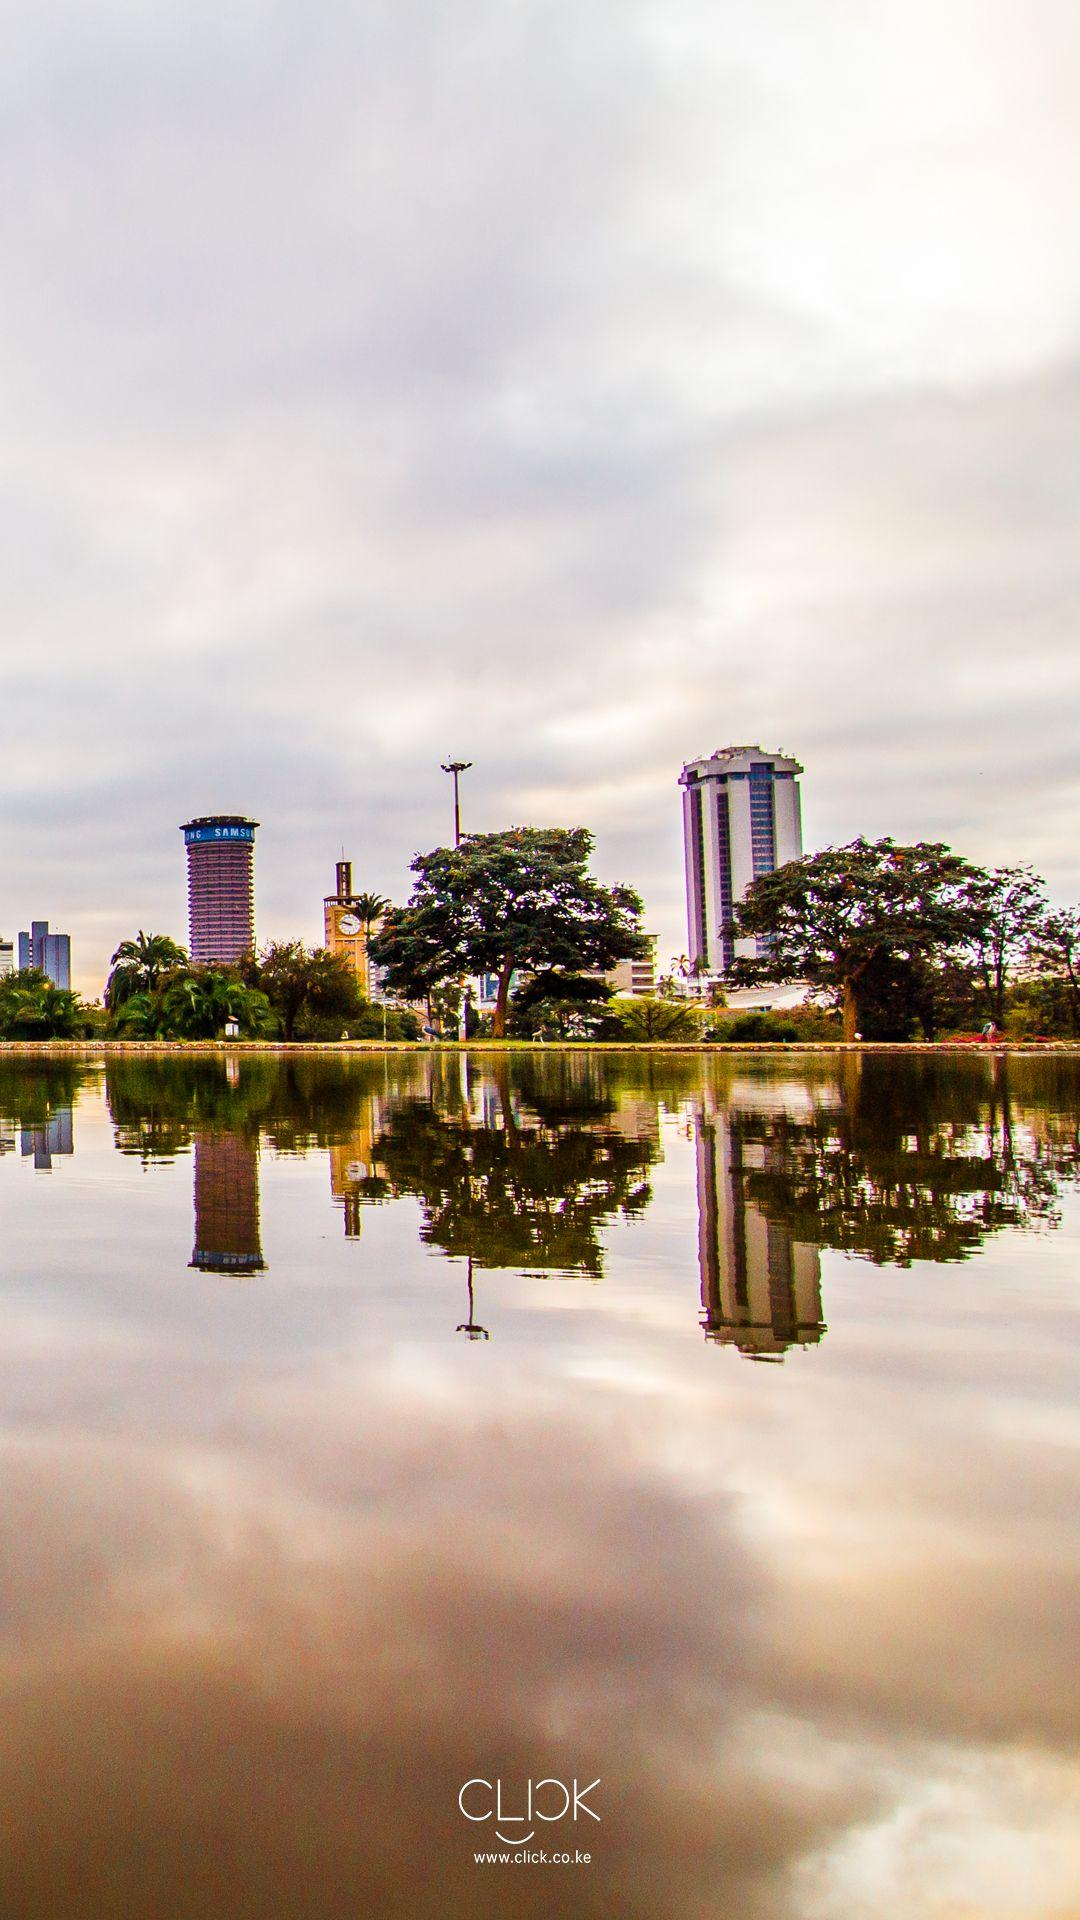 African Screens 55 – Nairobi Reflected | Clicking with Purpose